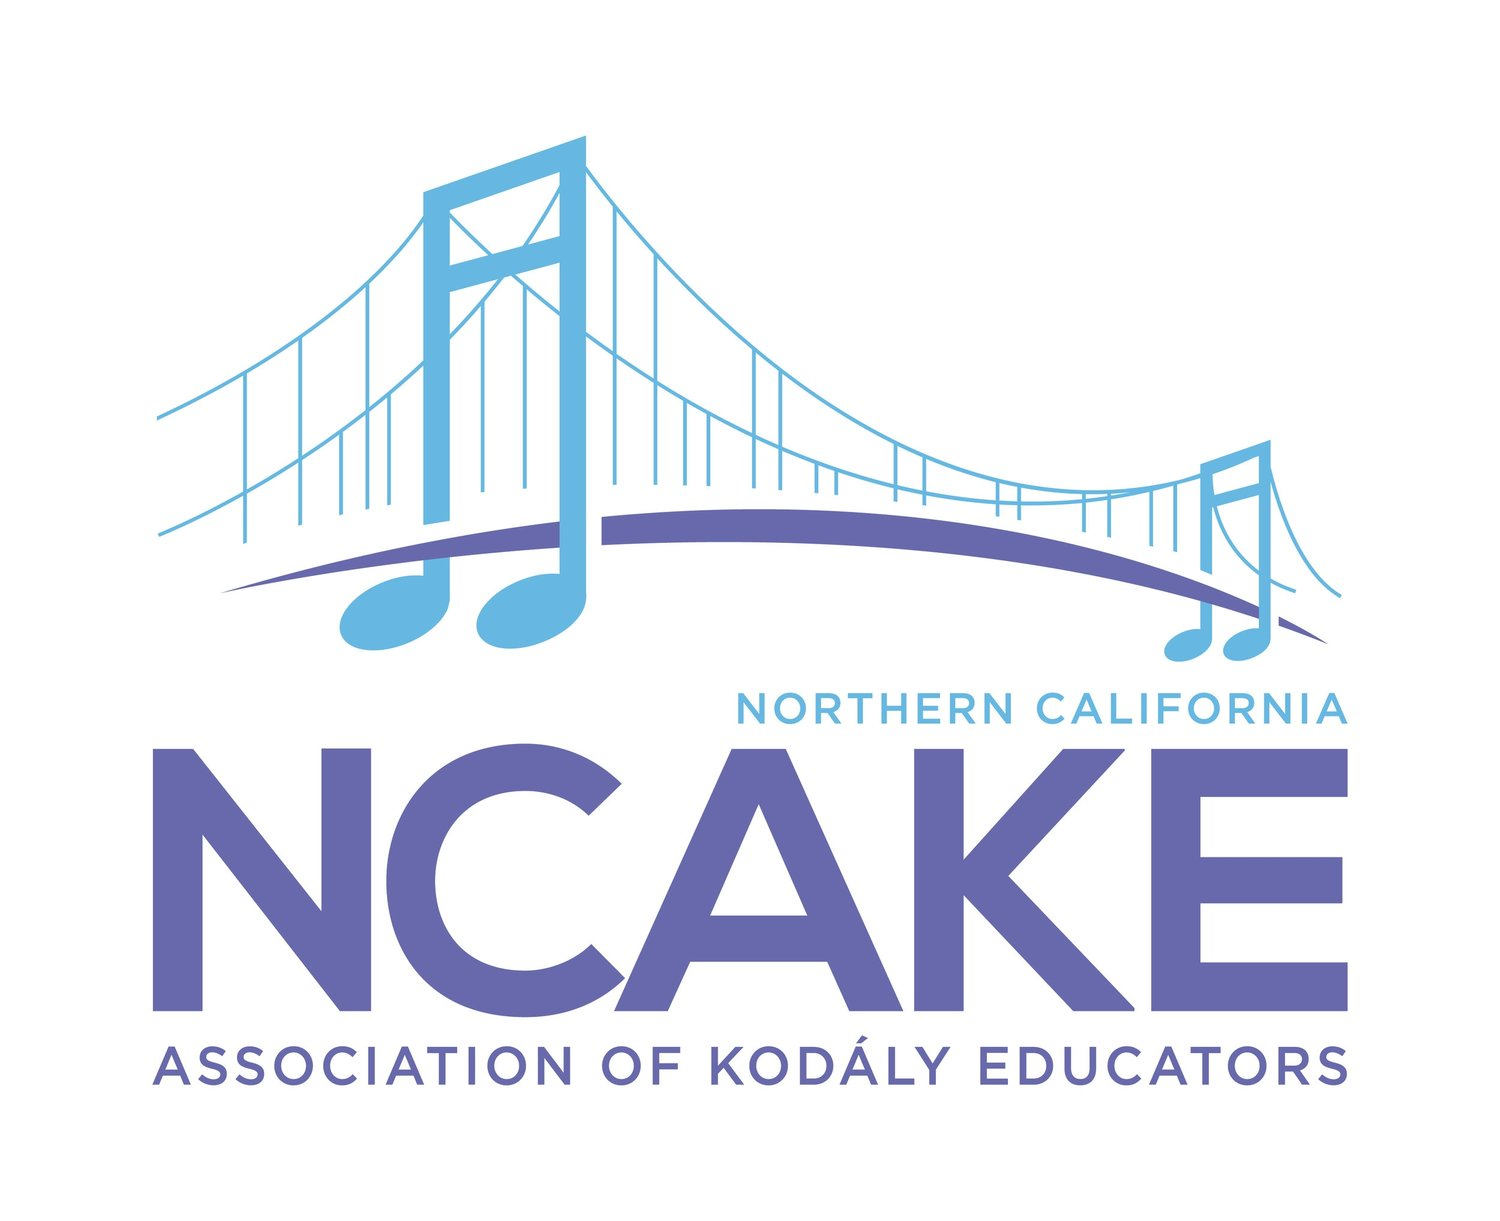 Northern California Association of Kodály Educators